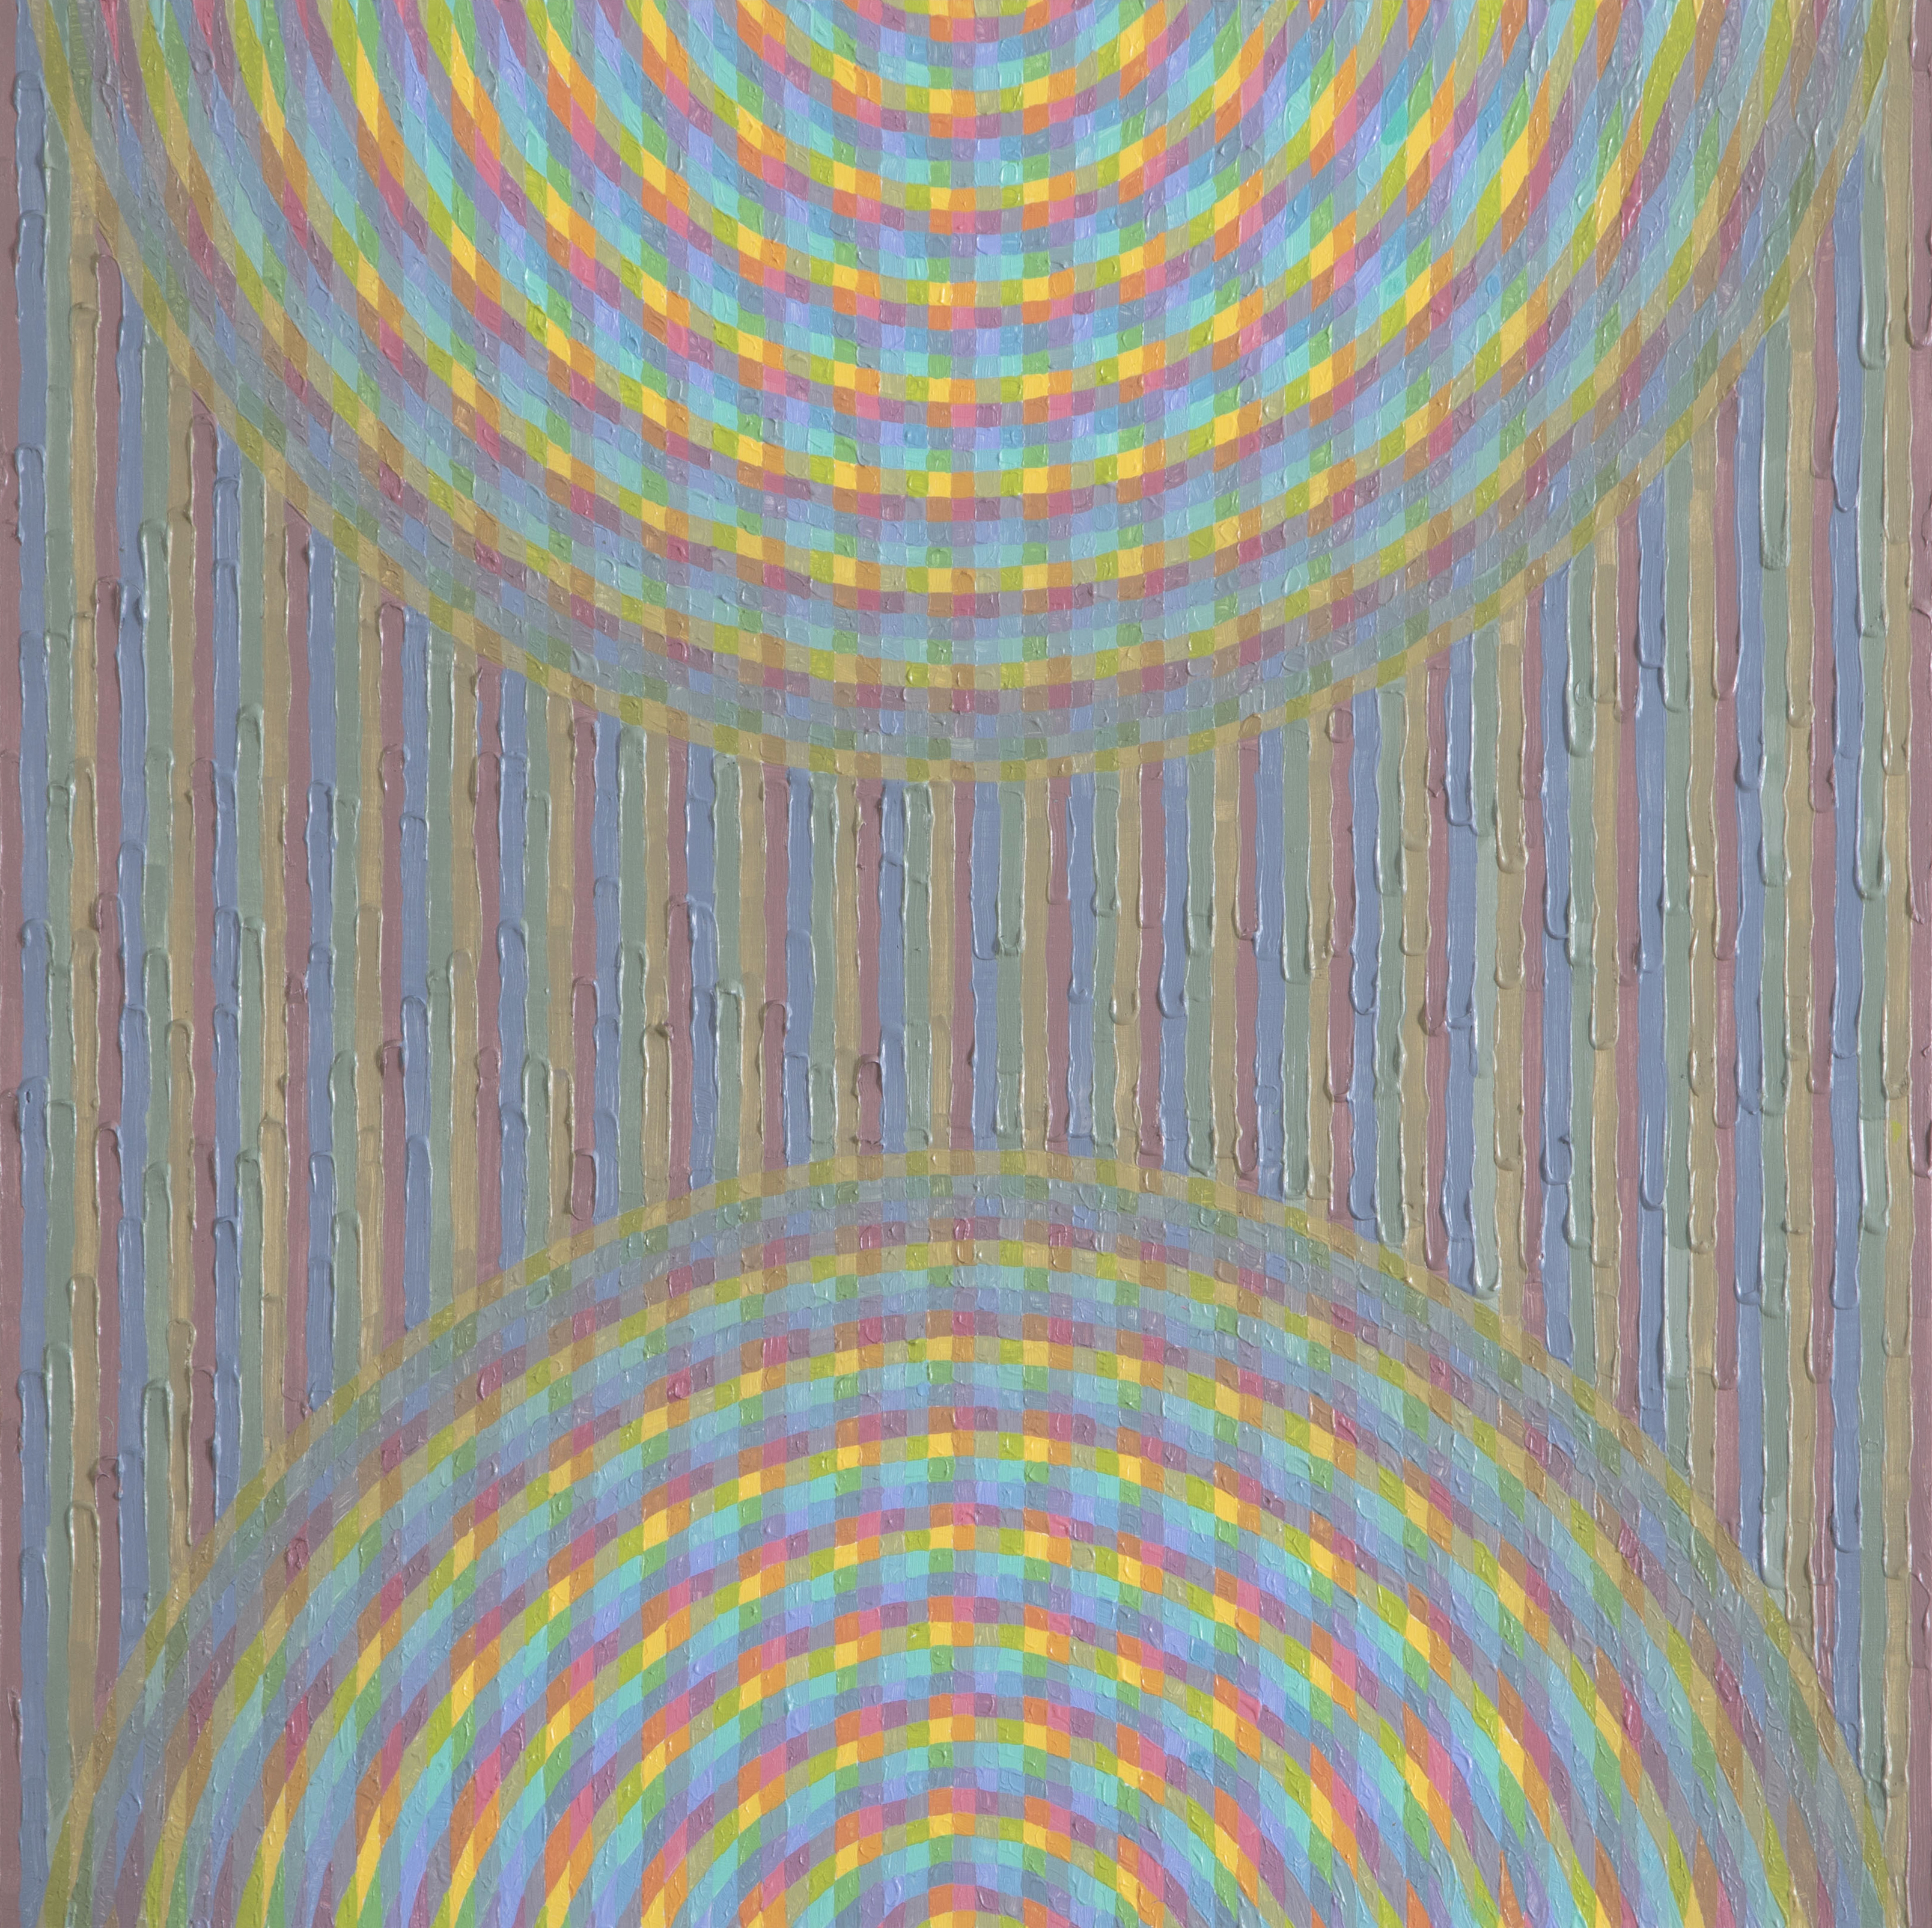 """Brianna Bass, Double Interference Ripple, Acrylic paint on cradled panel, 16"""" x 16"""", 2019"""